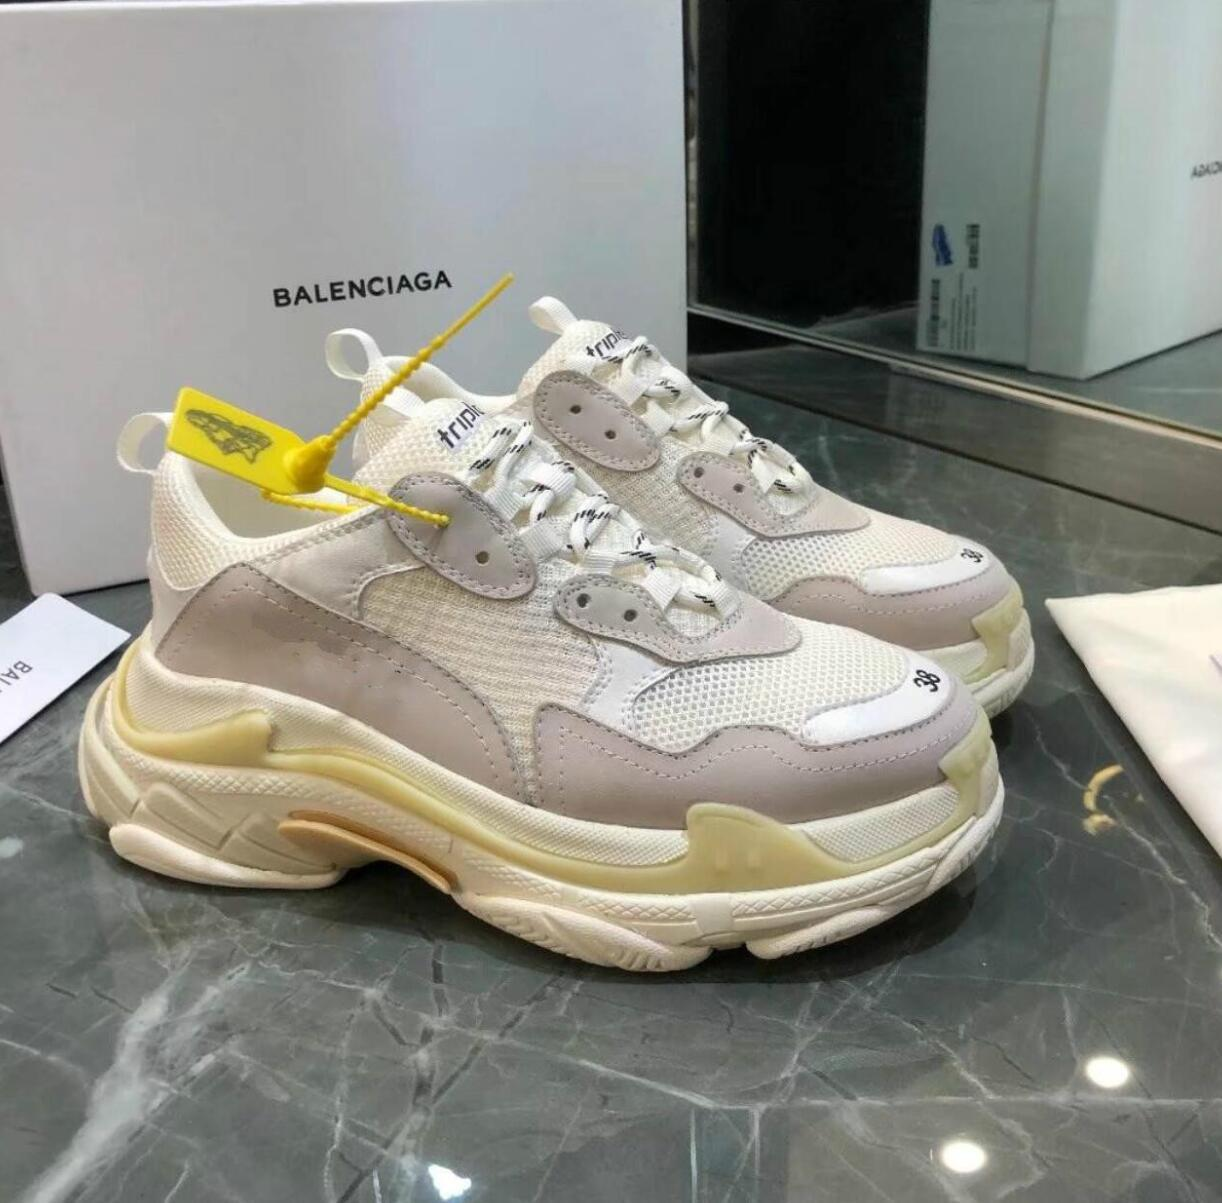 official images sale usa online official supplier Balenciaga TRIPLE S MEN FASHION RUNNING iOffer